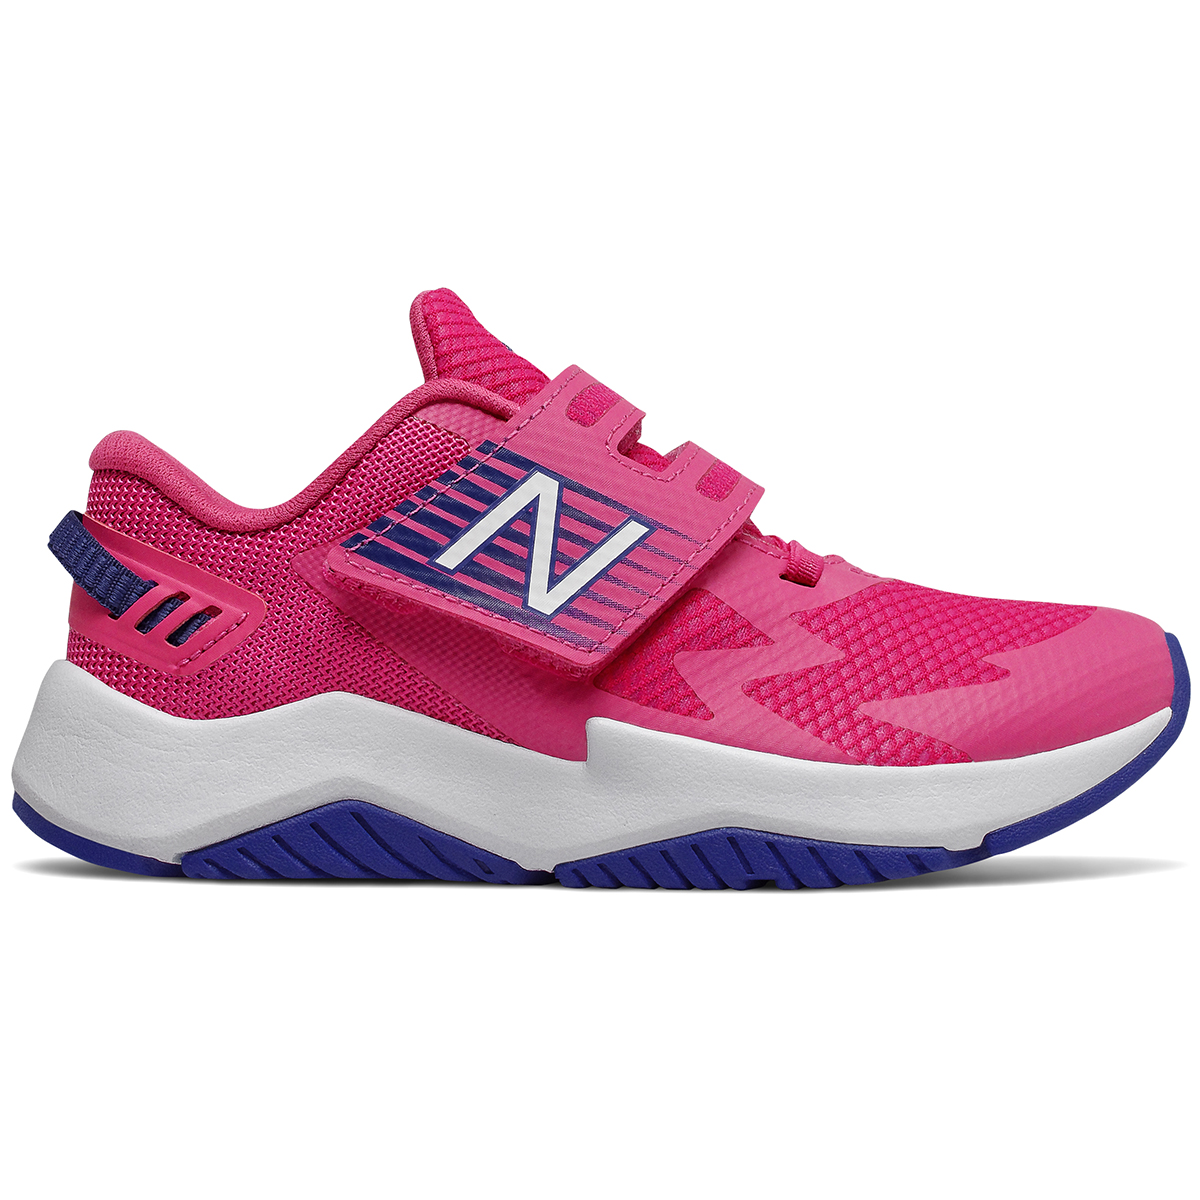 New Balance Little Girls' Rave Running Sneakers - Red, 11